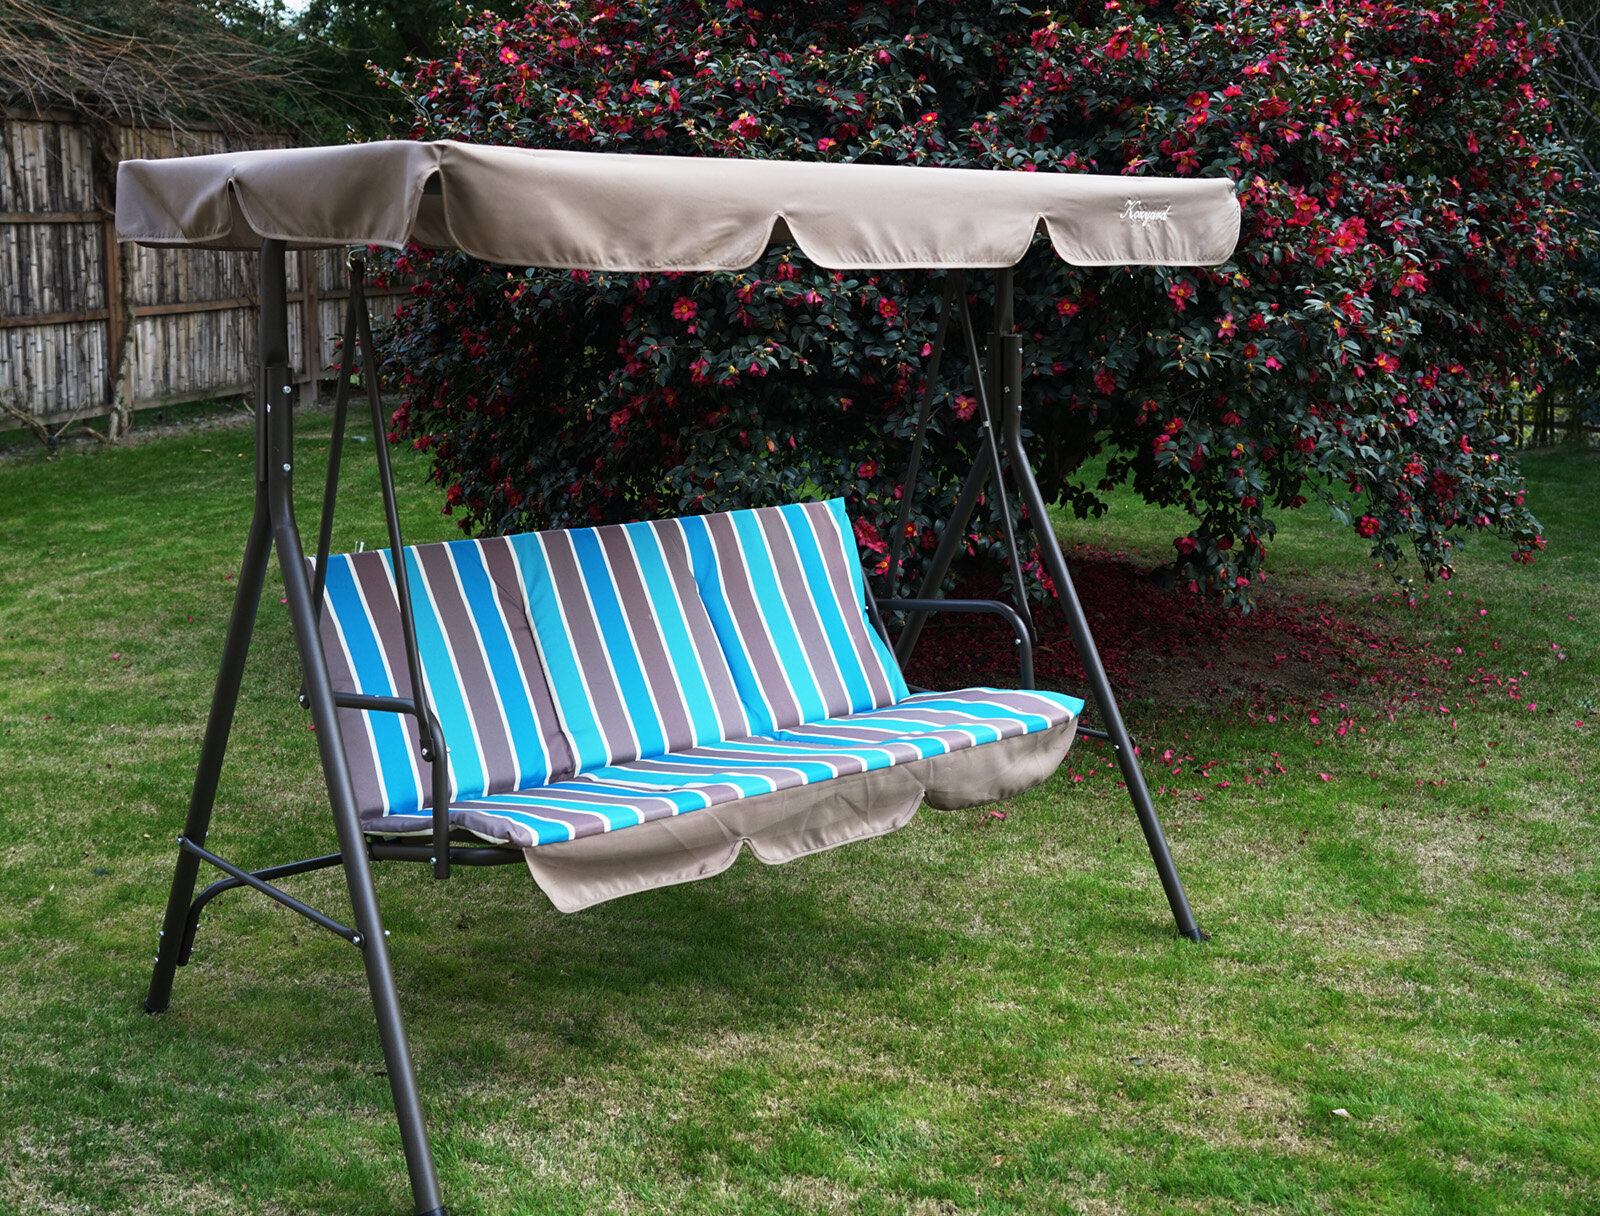 Alicia Patio Swing Chair With 3 Comfortable Cushion Seats And Strong Weather Resistant Powder Coated Steel Frame (Colour: Red Stripe) Throughout Outdoor Swing Glider Chairs With Powder Coated Steel Frame (View 6 of 25)